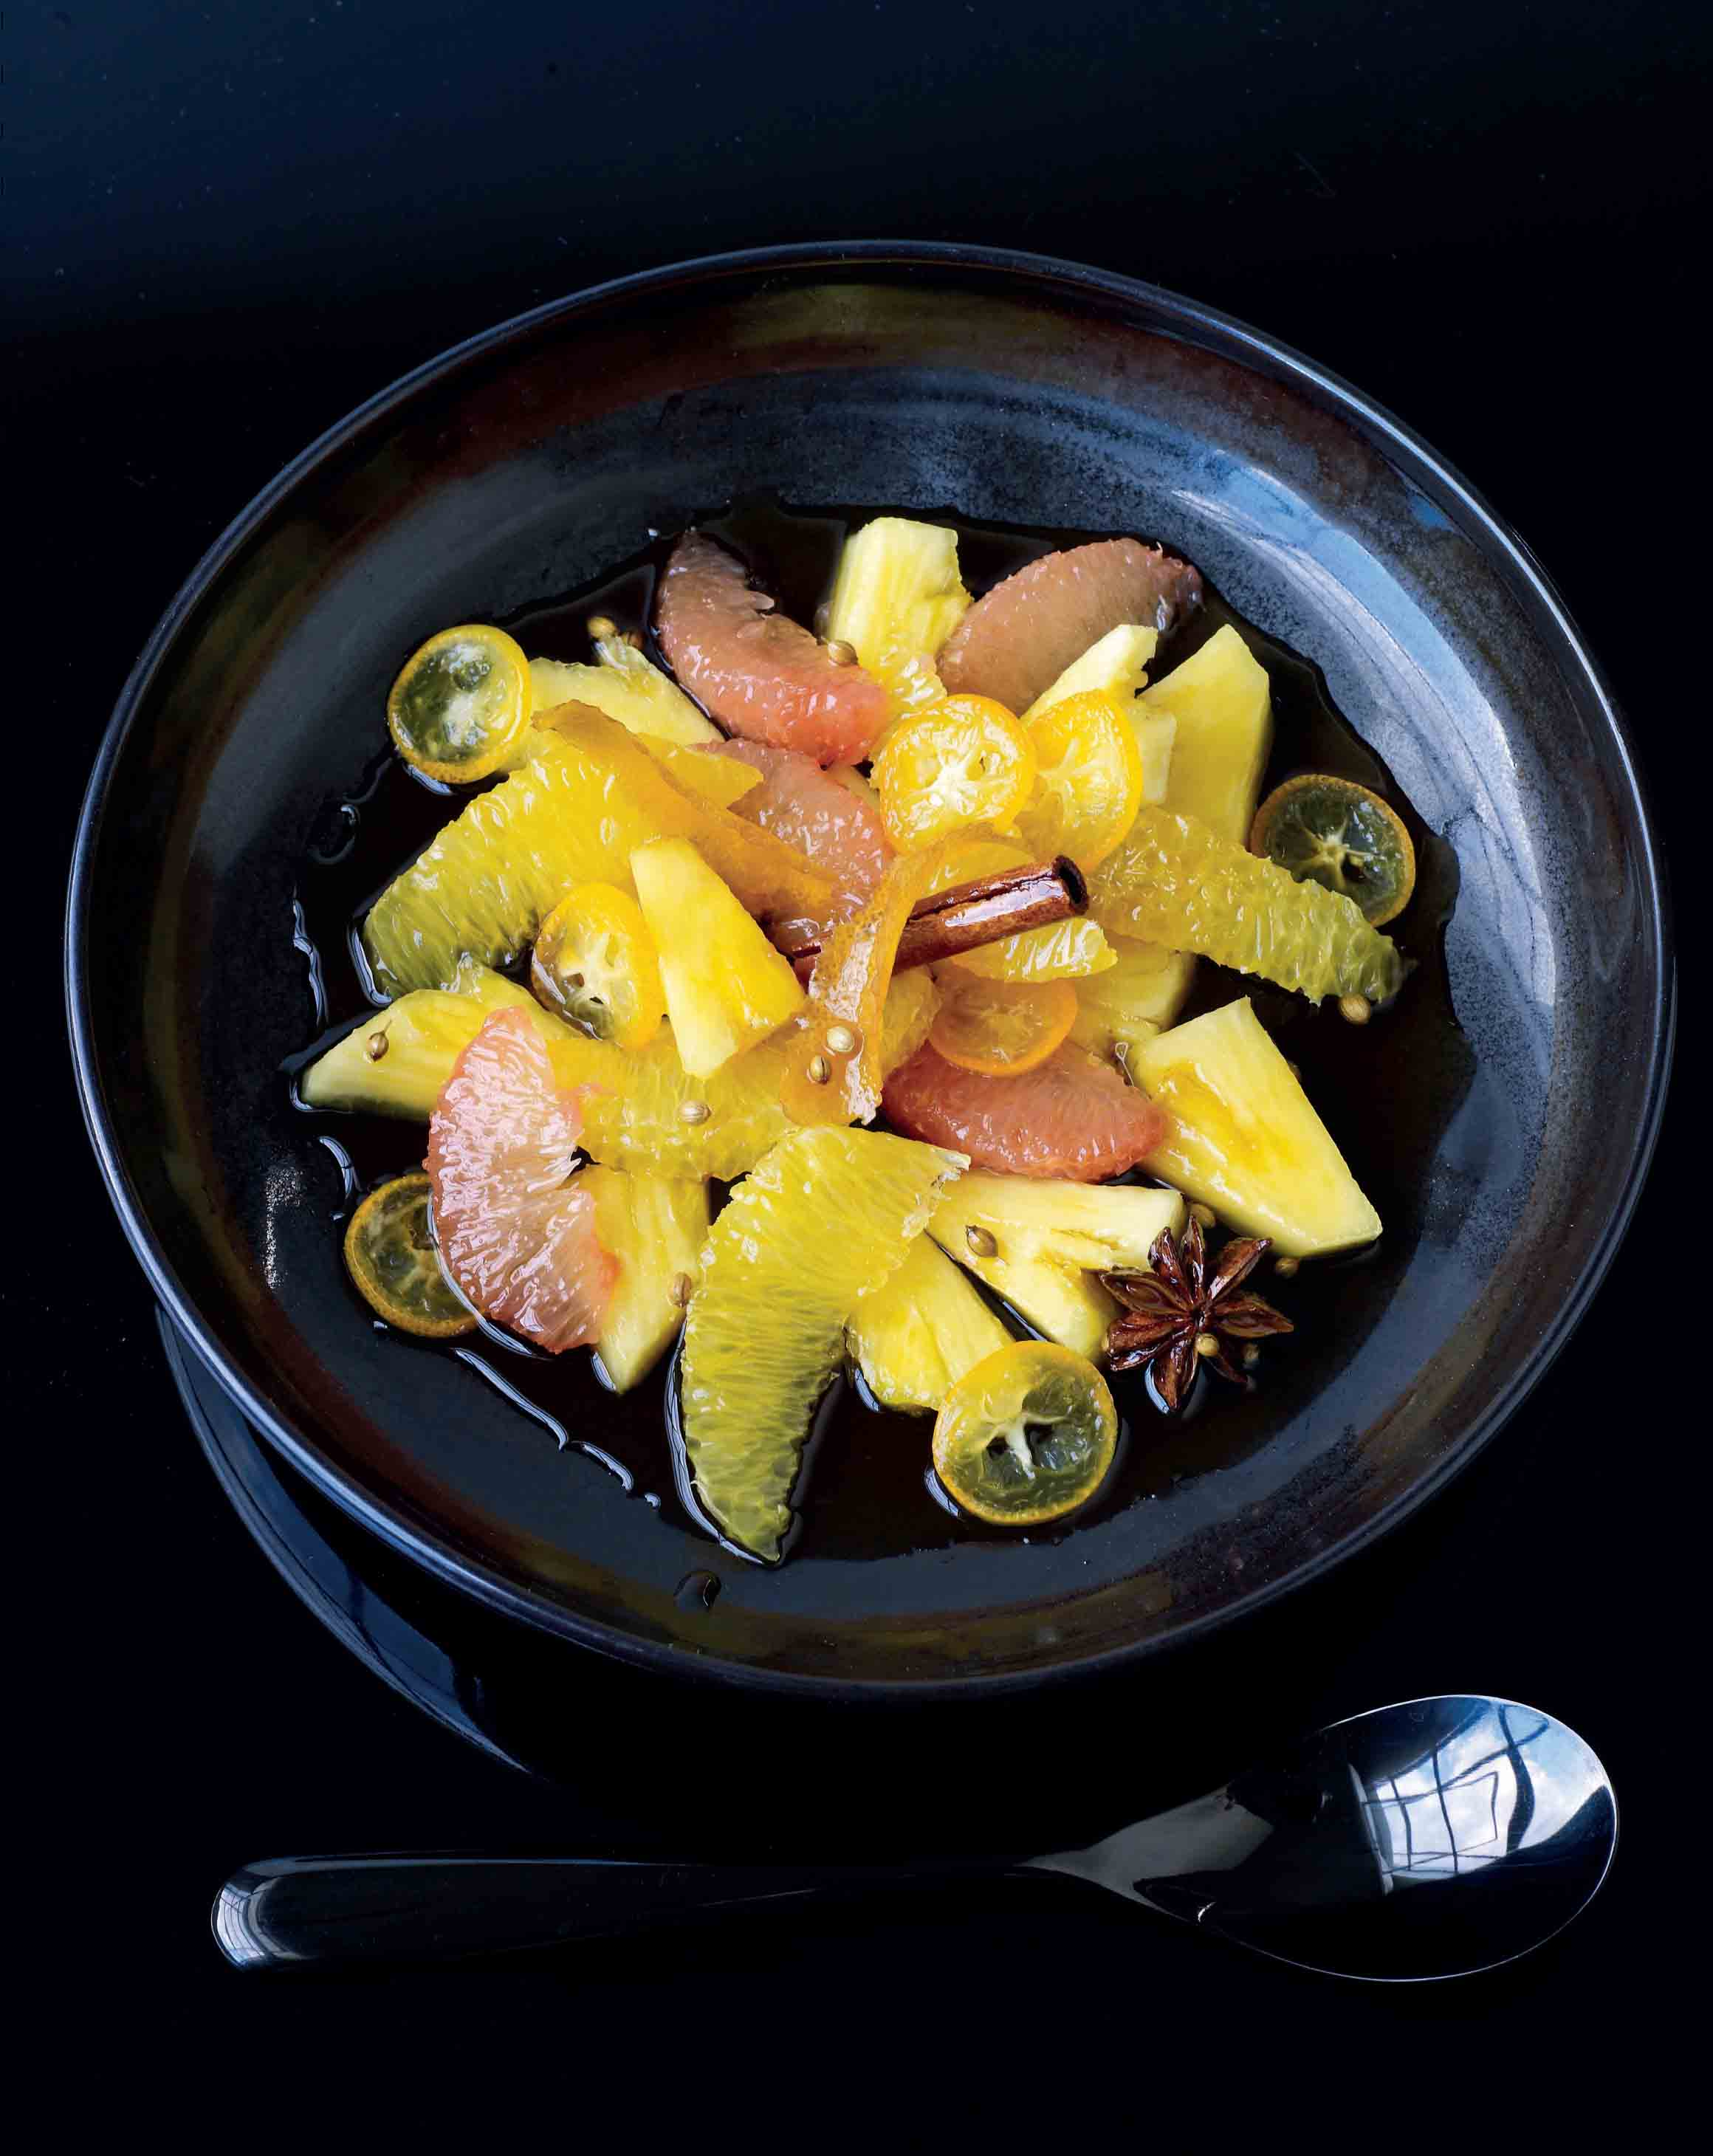 Citrus fruit salad in spiced caramel